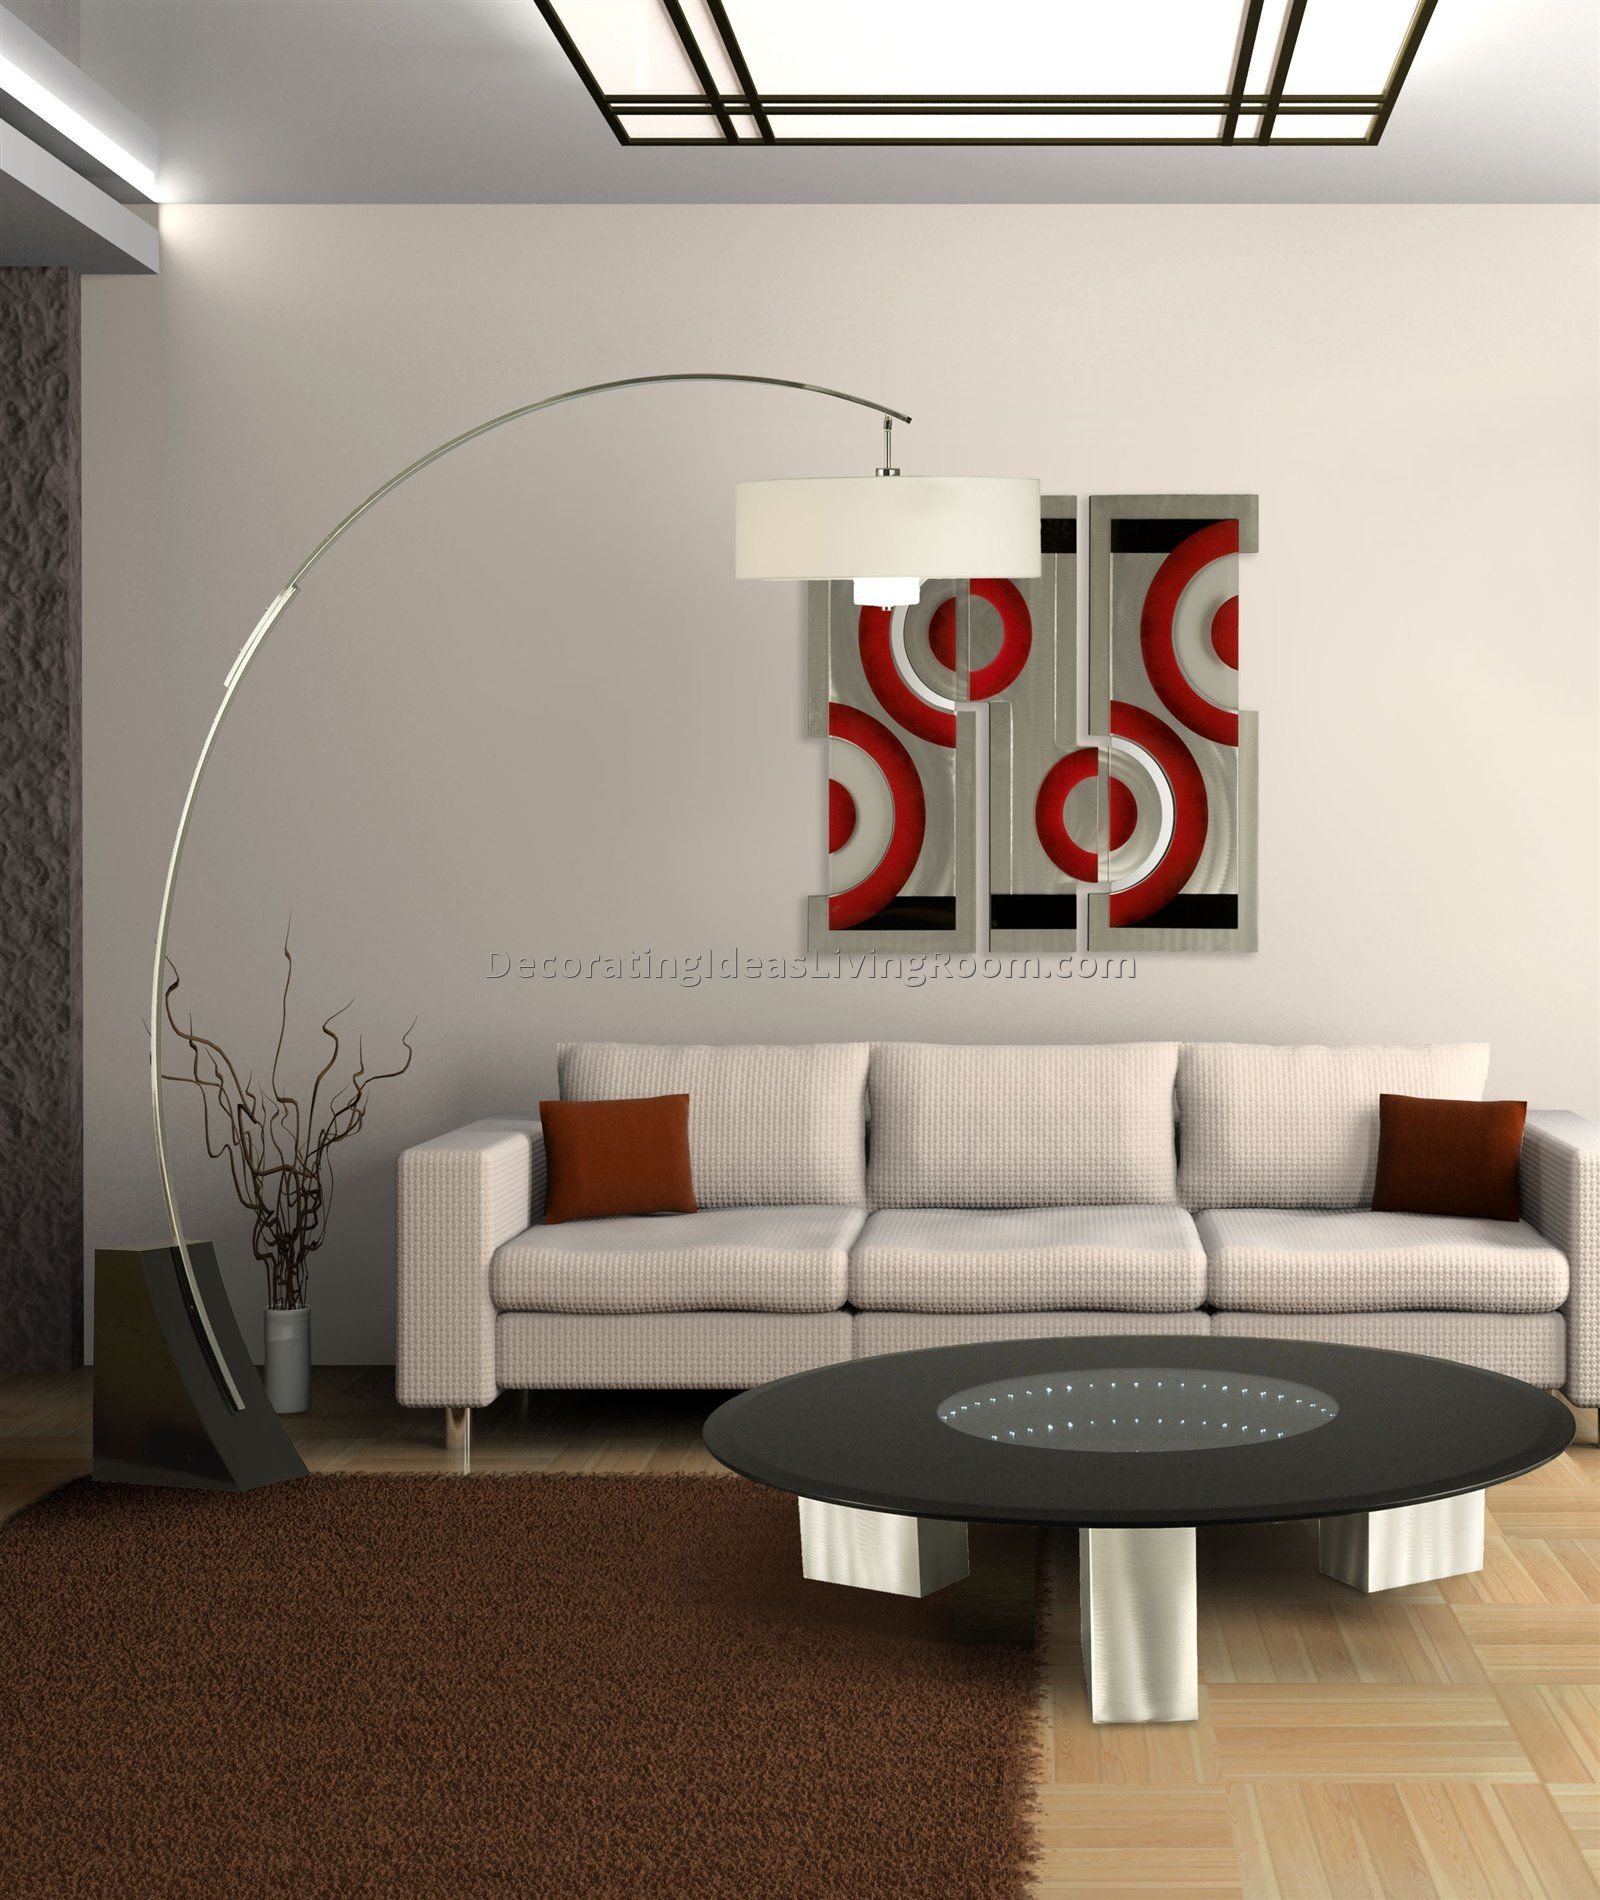 20 modern floor lamps design ideas with pictures hgnv com for Floor decoration designs